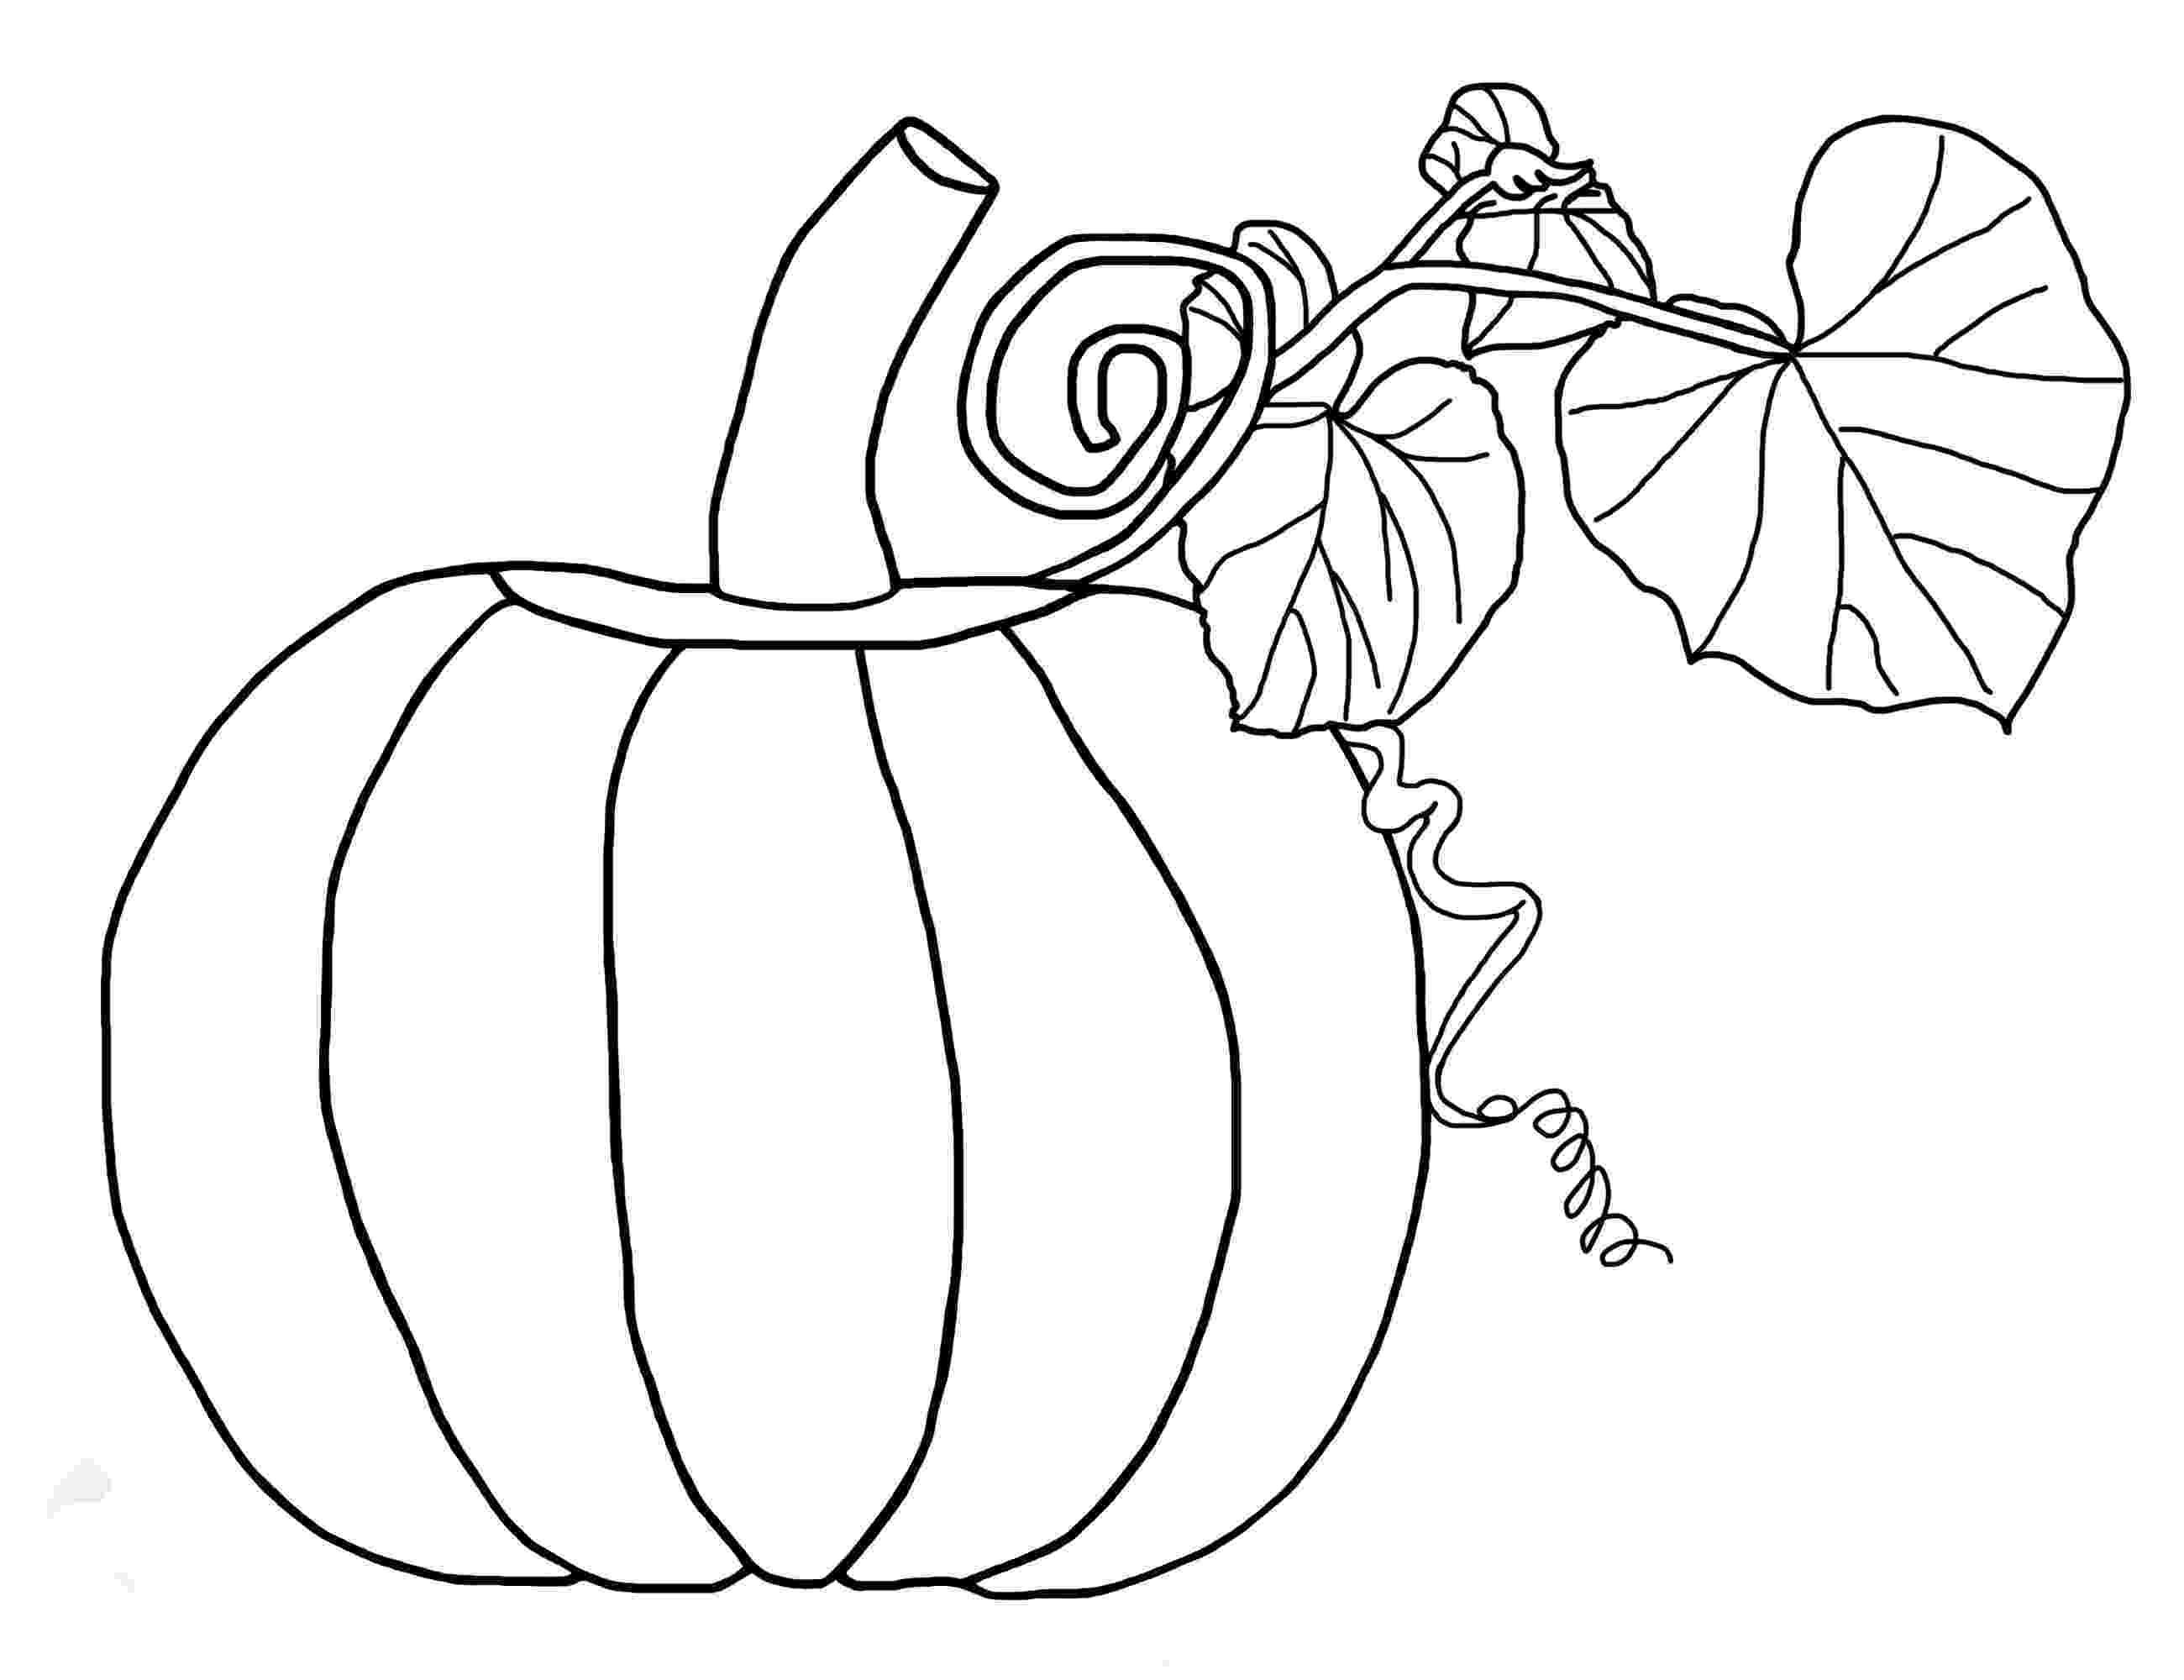 pumkin coloring pages free printable pumpkin coloring pages for kids coloring pumkin pages 1 1